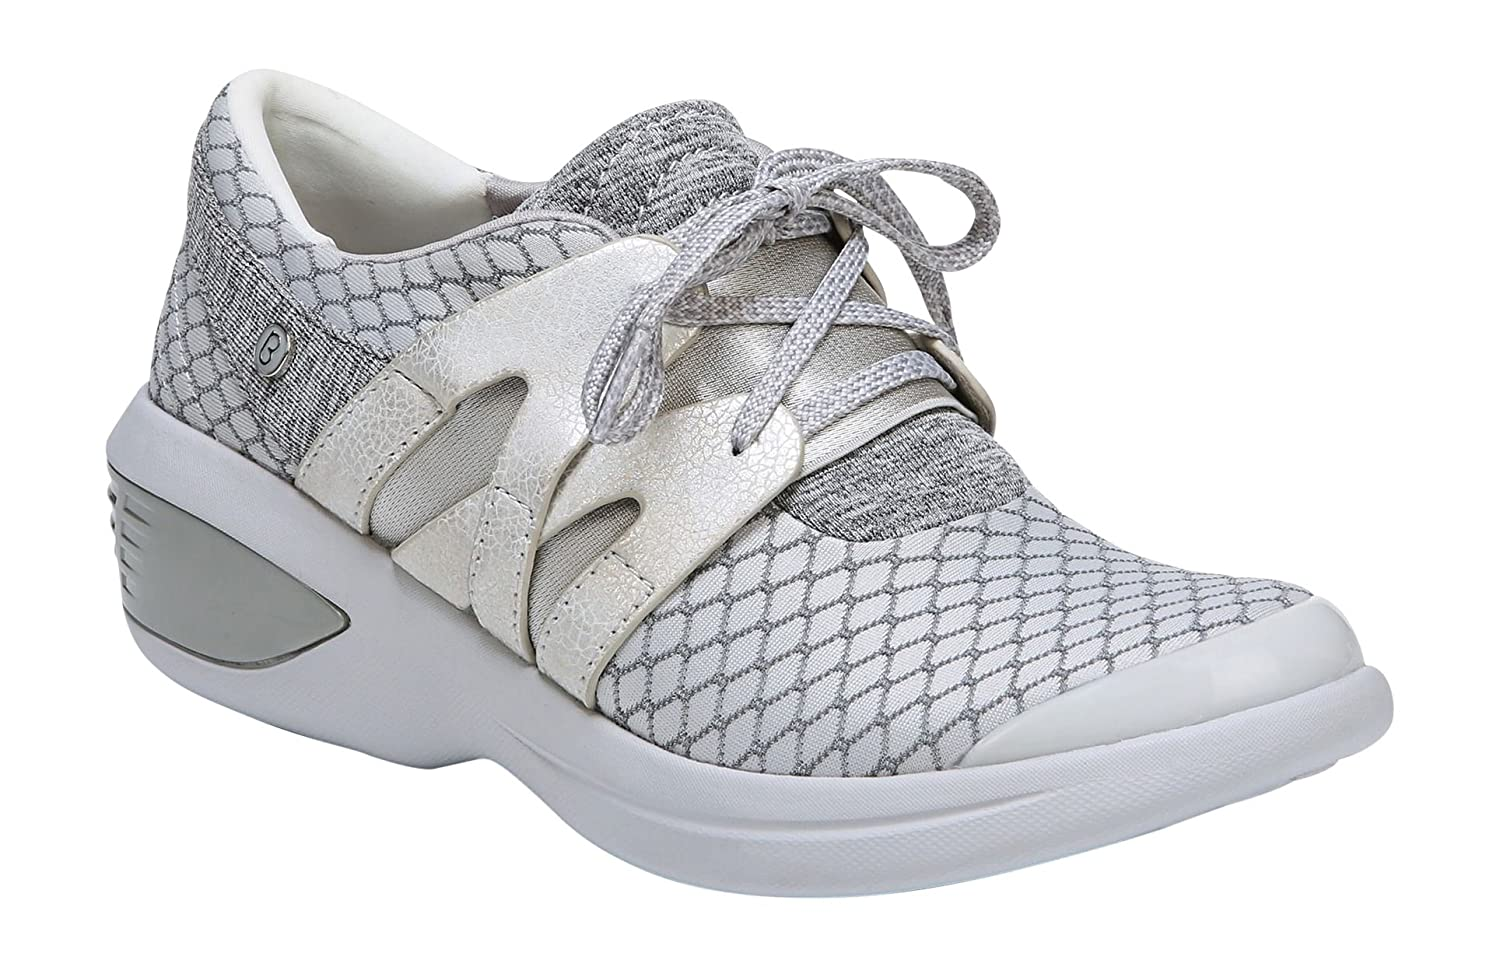 BZees Women's Flicker Sneaker B076C4R9BV 9 B(M) US|Grey